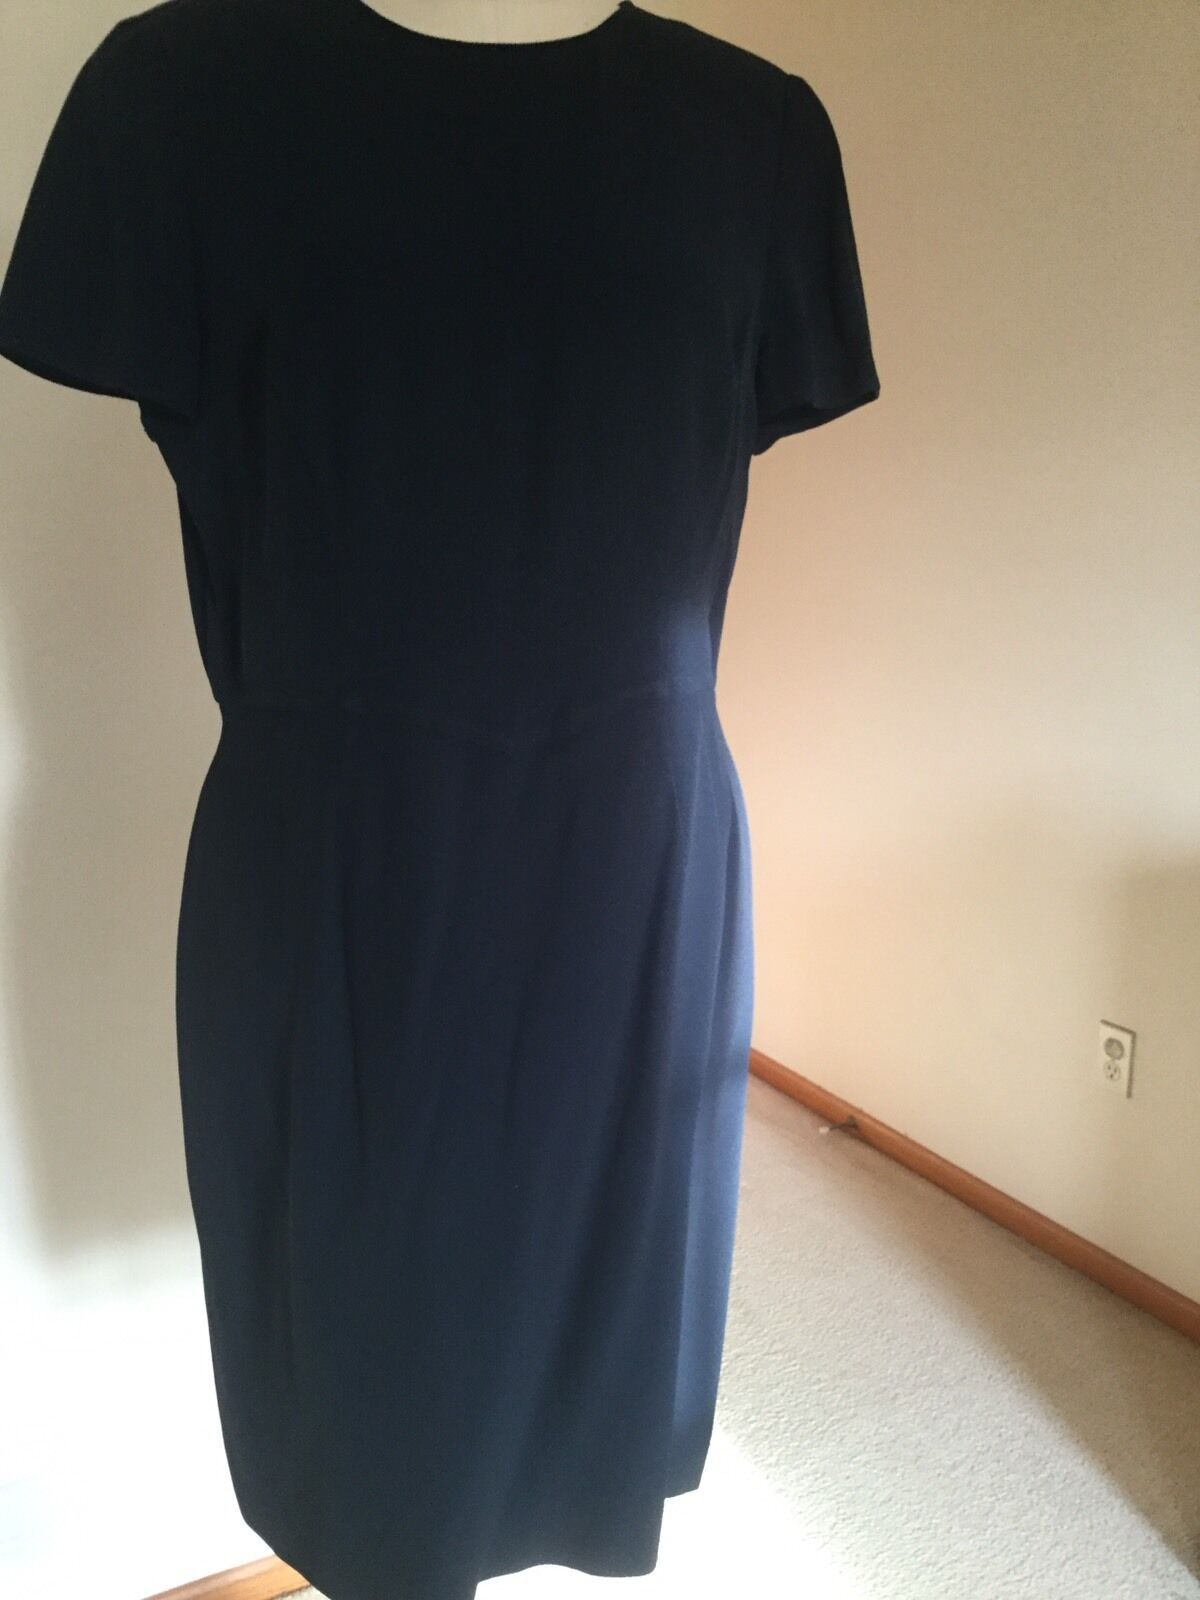 Primary image for Armani dress,US Size 12,Navy,Short sleeves,